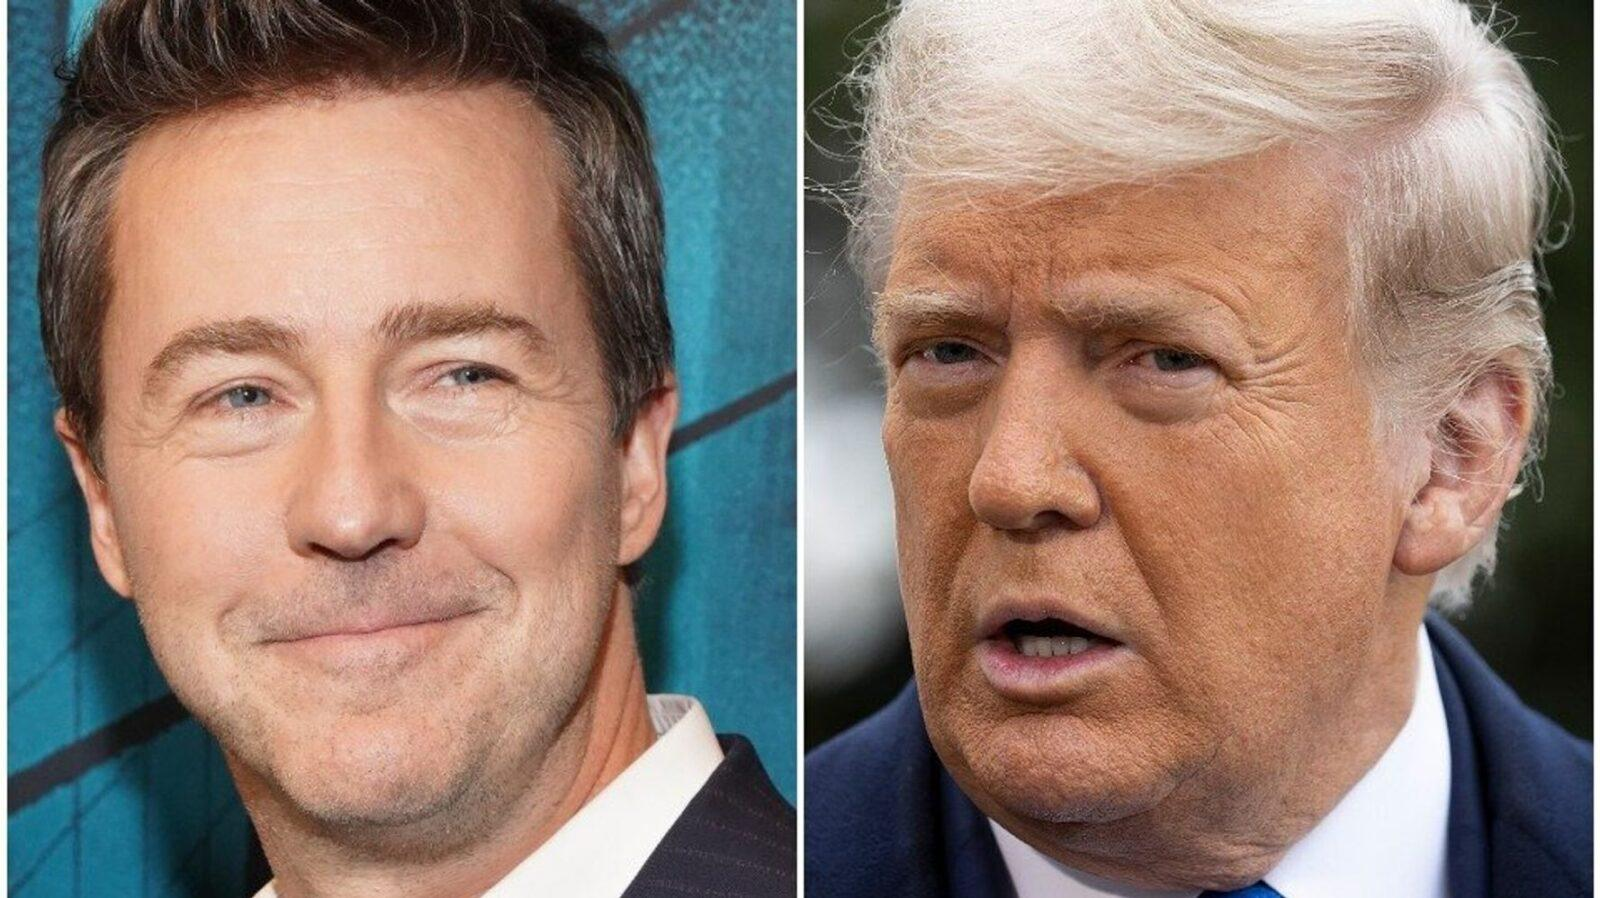 Edward Norton Compares 'Whiny' Trump's Actions To A Failed Poker Hand